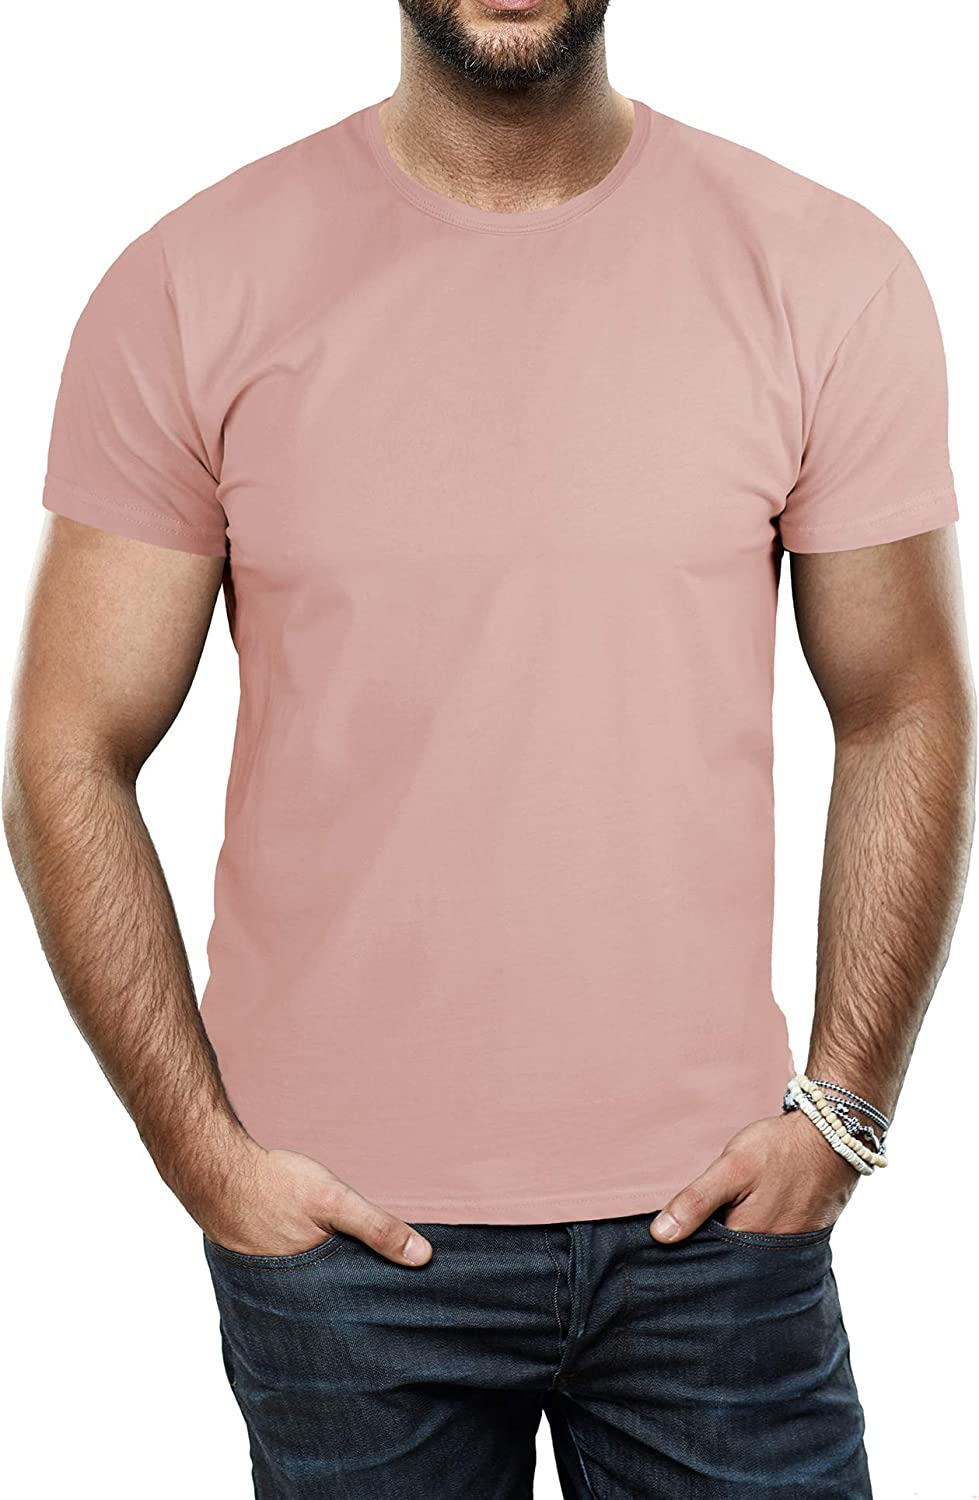 X RAY Men's Soft Stretch Cotton Solid Short Sleeve Crew T-Shirt, Fashion Casual Tee for Men